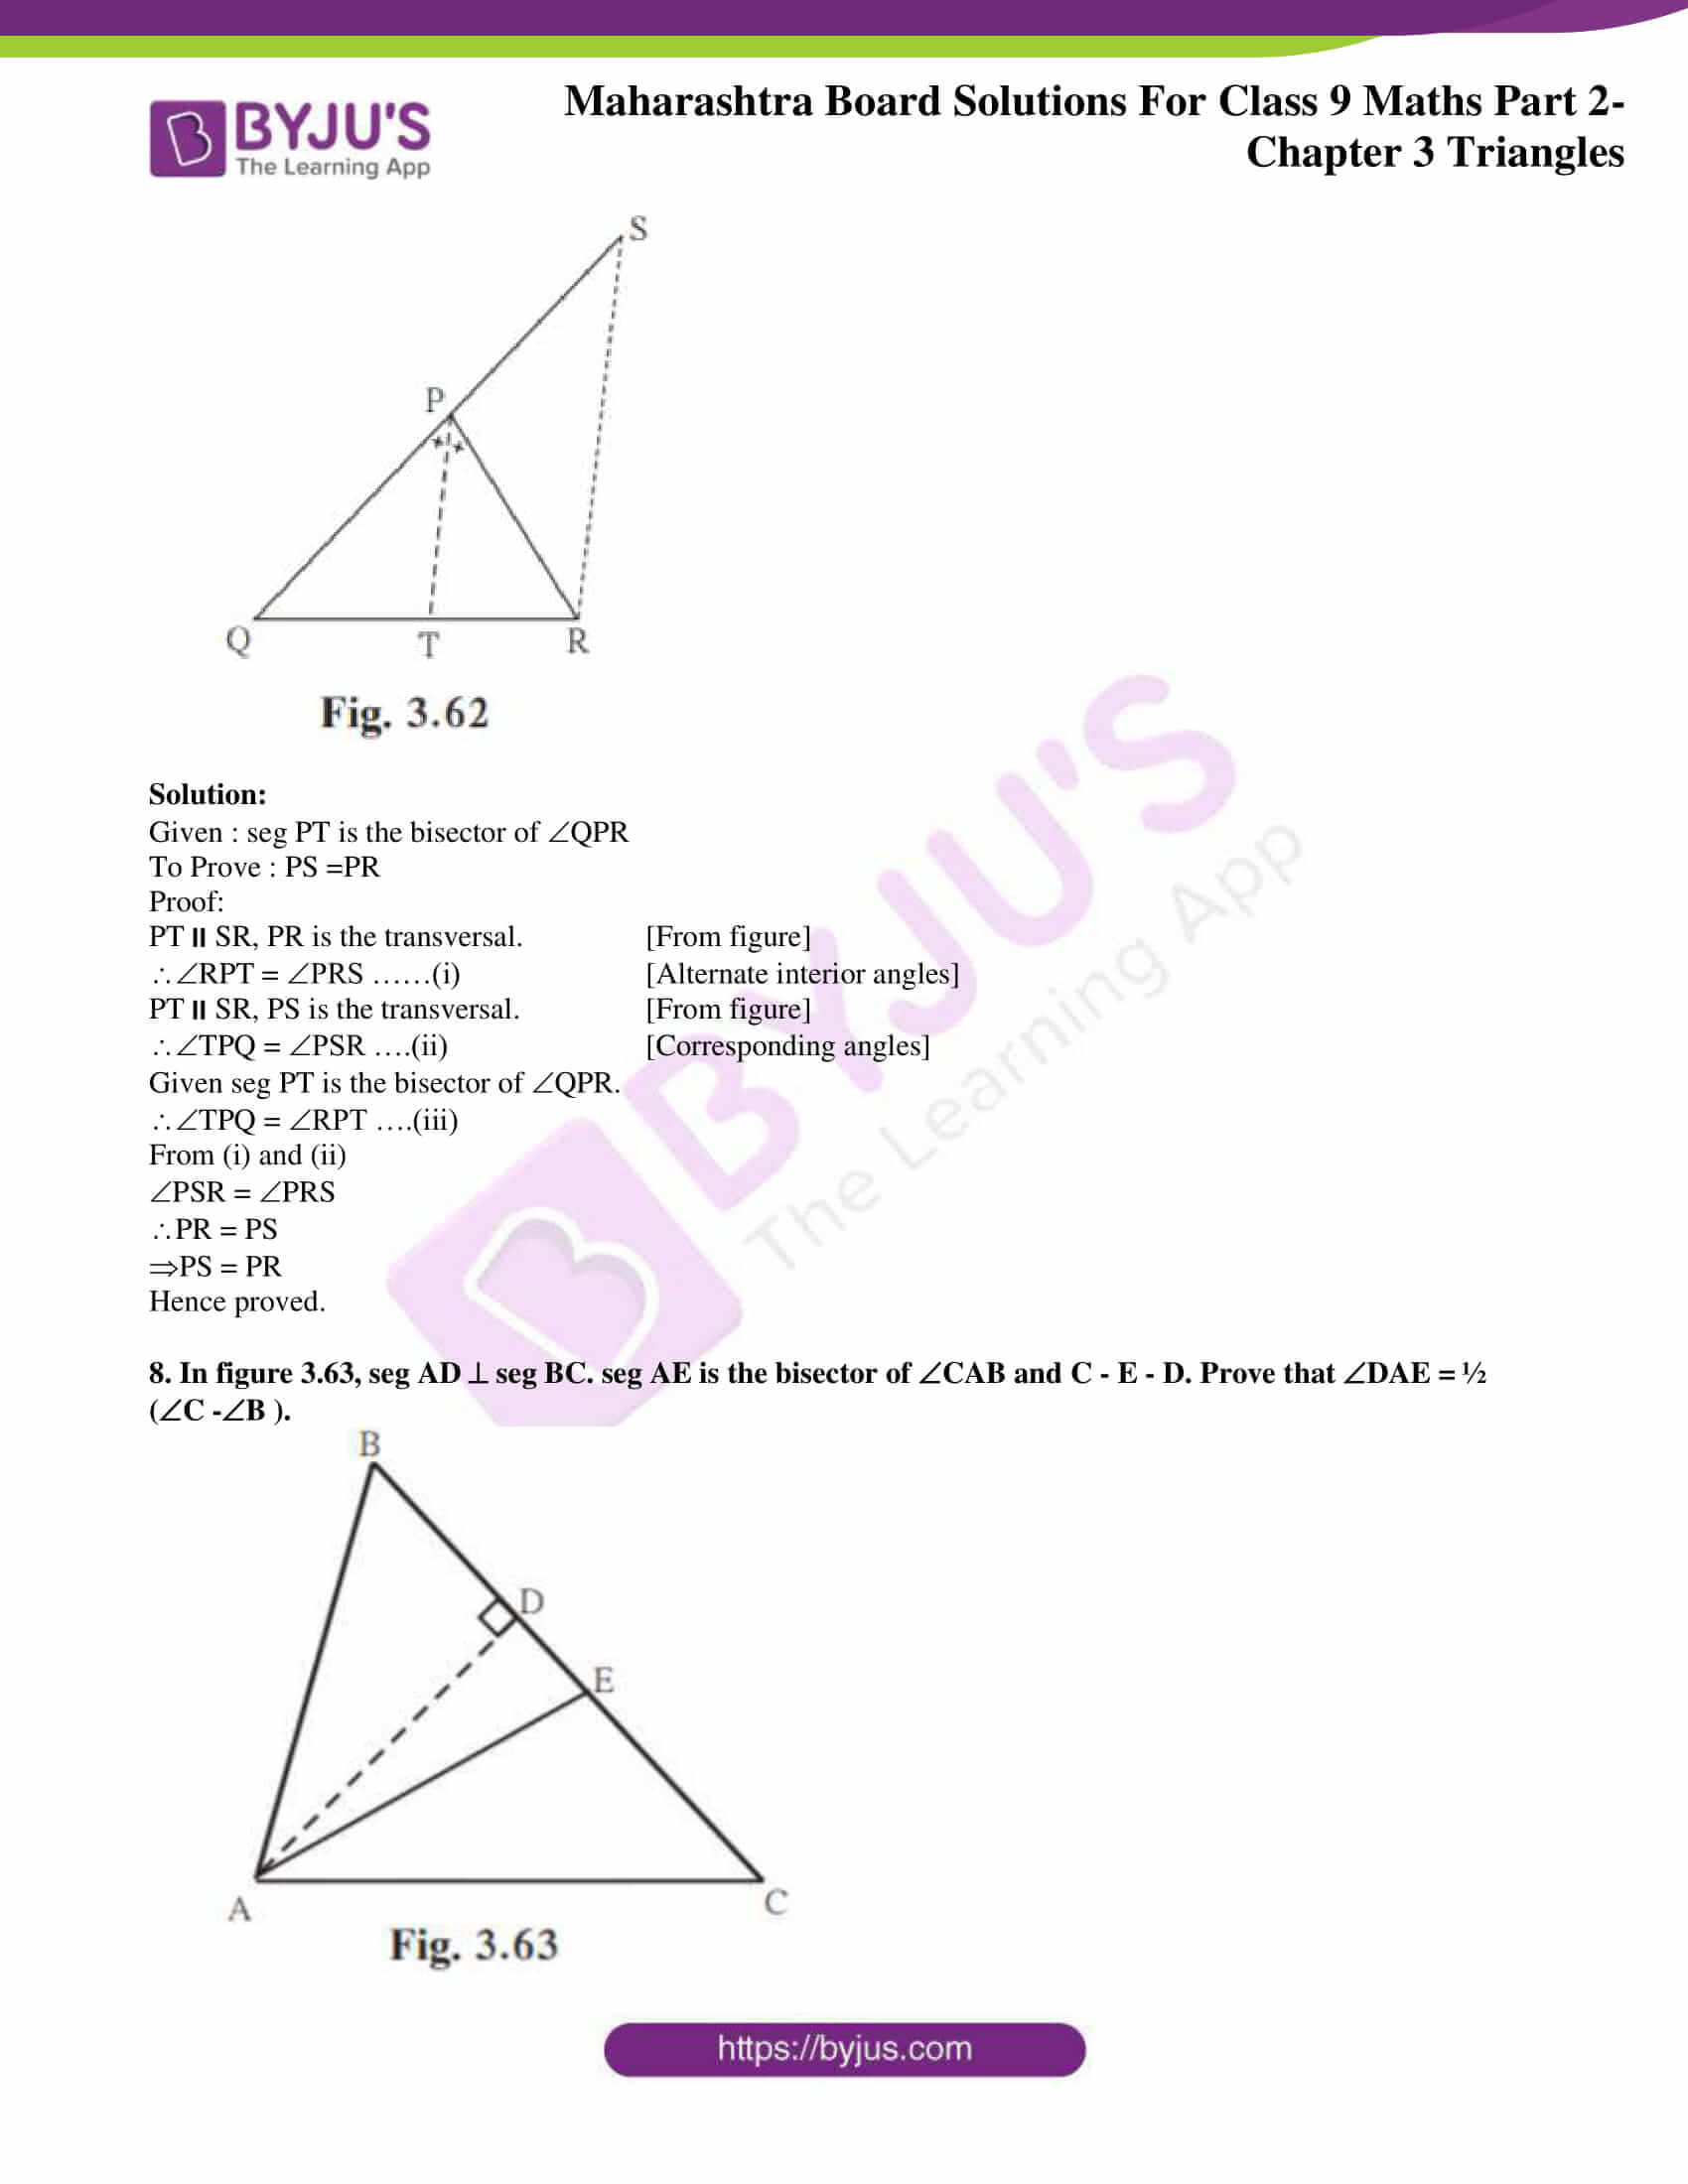 msbshse solutions for class 9 maths part 2 chapter 3 24